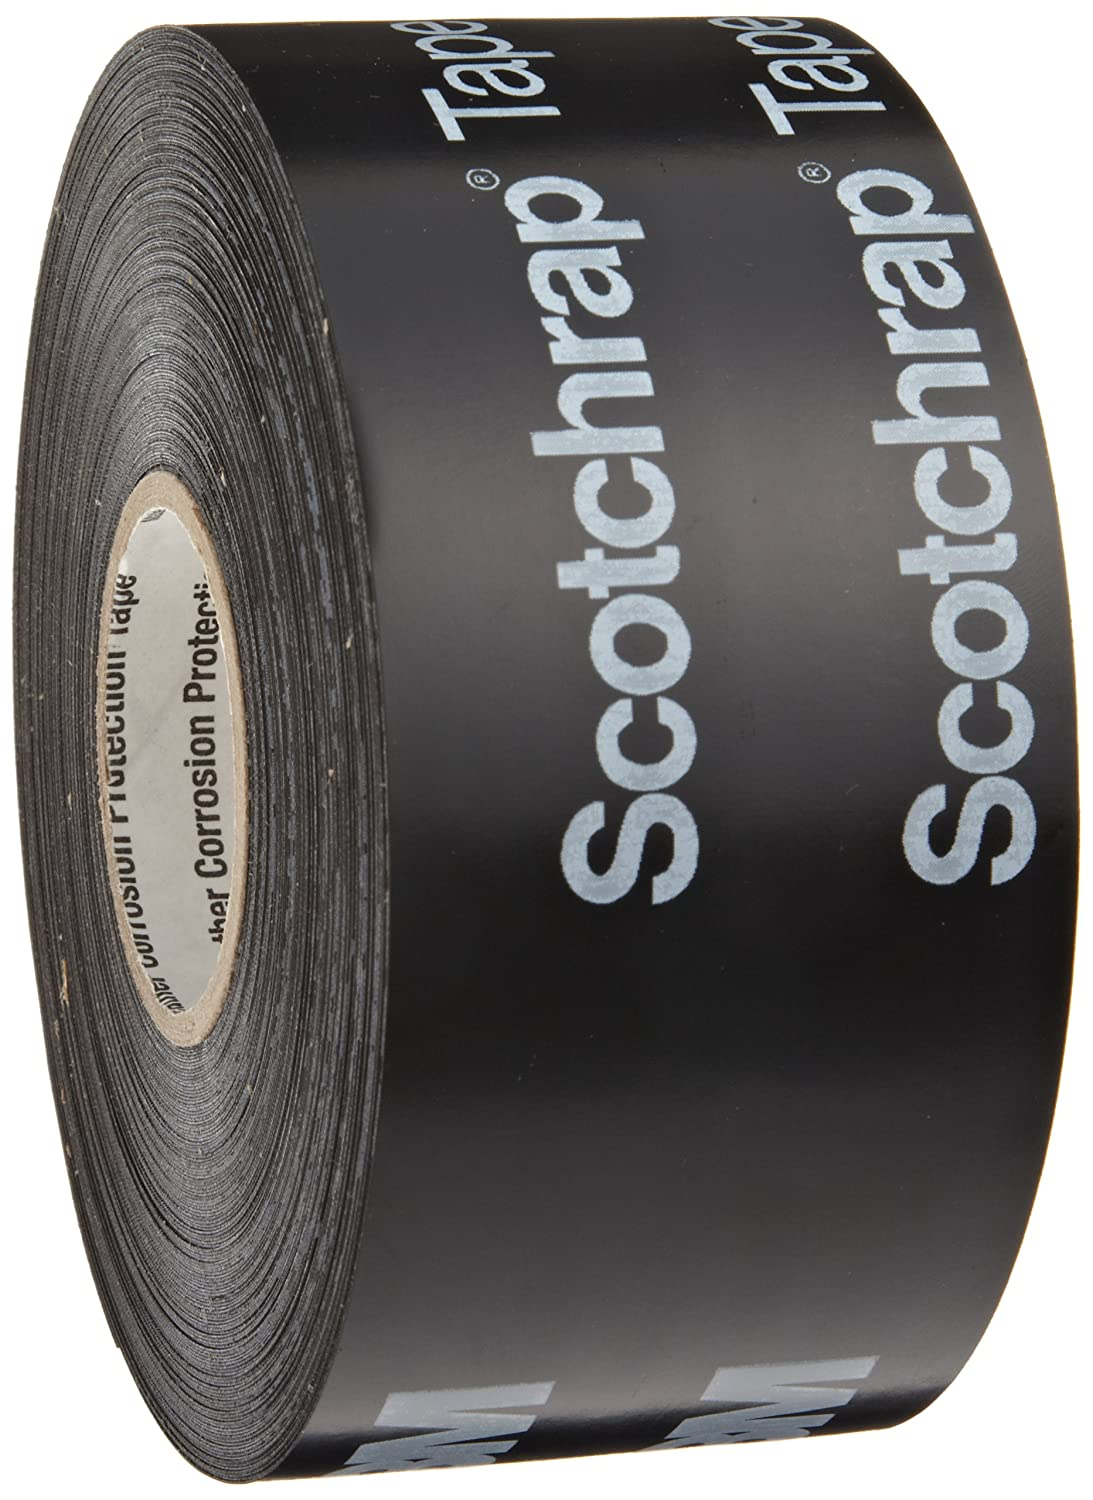 """Printed 3M Scotchrap All-Weather Corrosion Protection Tape 100 Foot 2/"""" Width"""